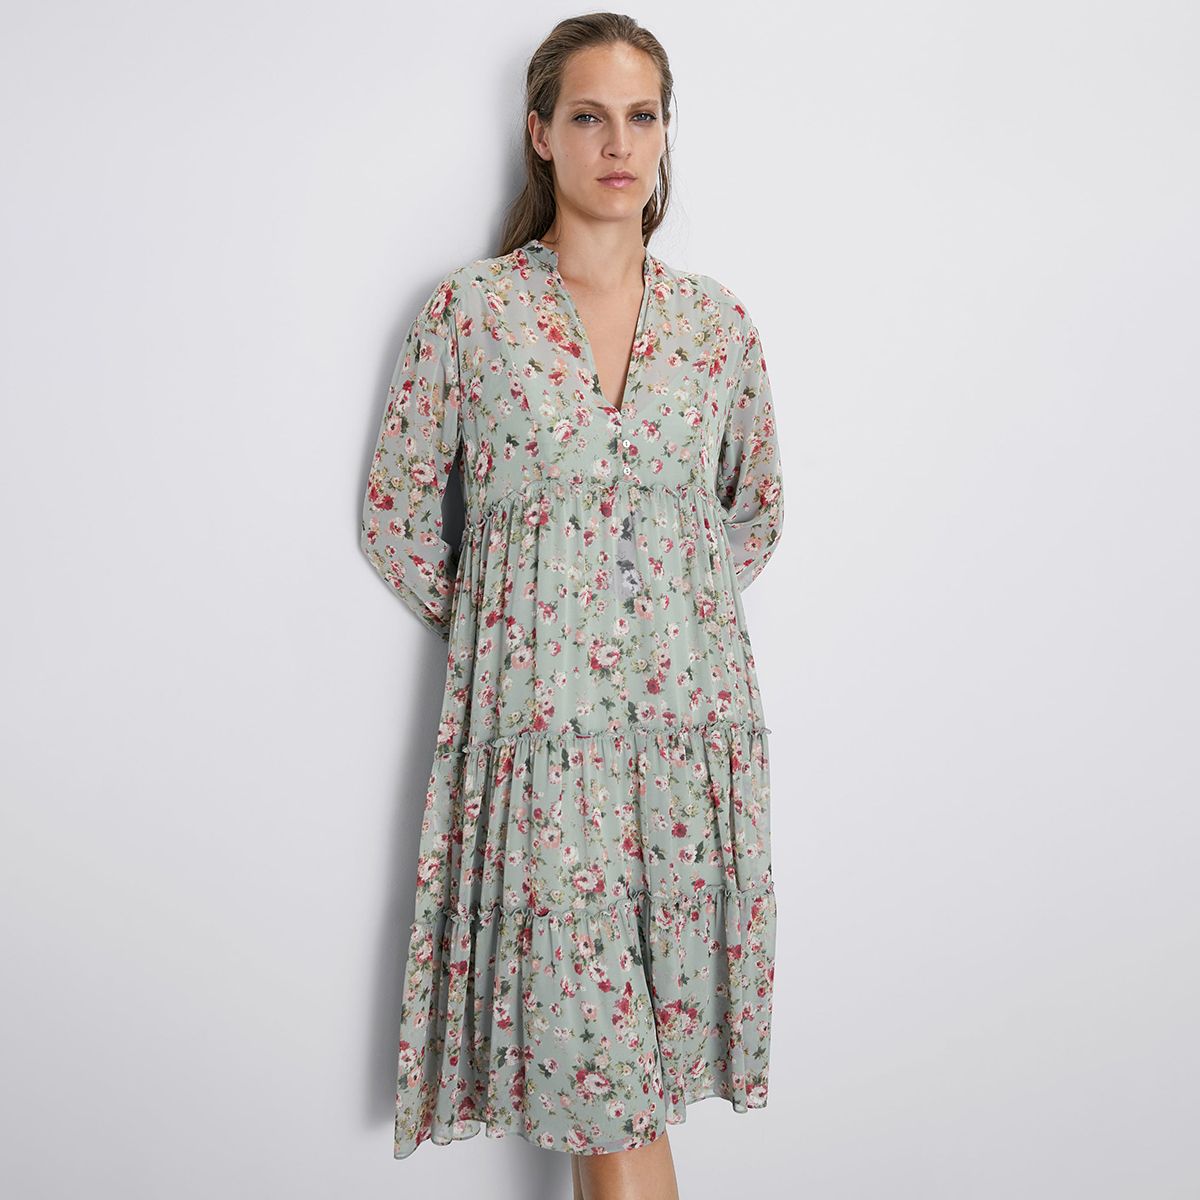 Jastie Floral Print Dress V-Neck Long Sleeve Autumn Dresses Ruffle Hem Hippie Chic Boho Dress Casual Beach Midi Dresses Vestidos